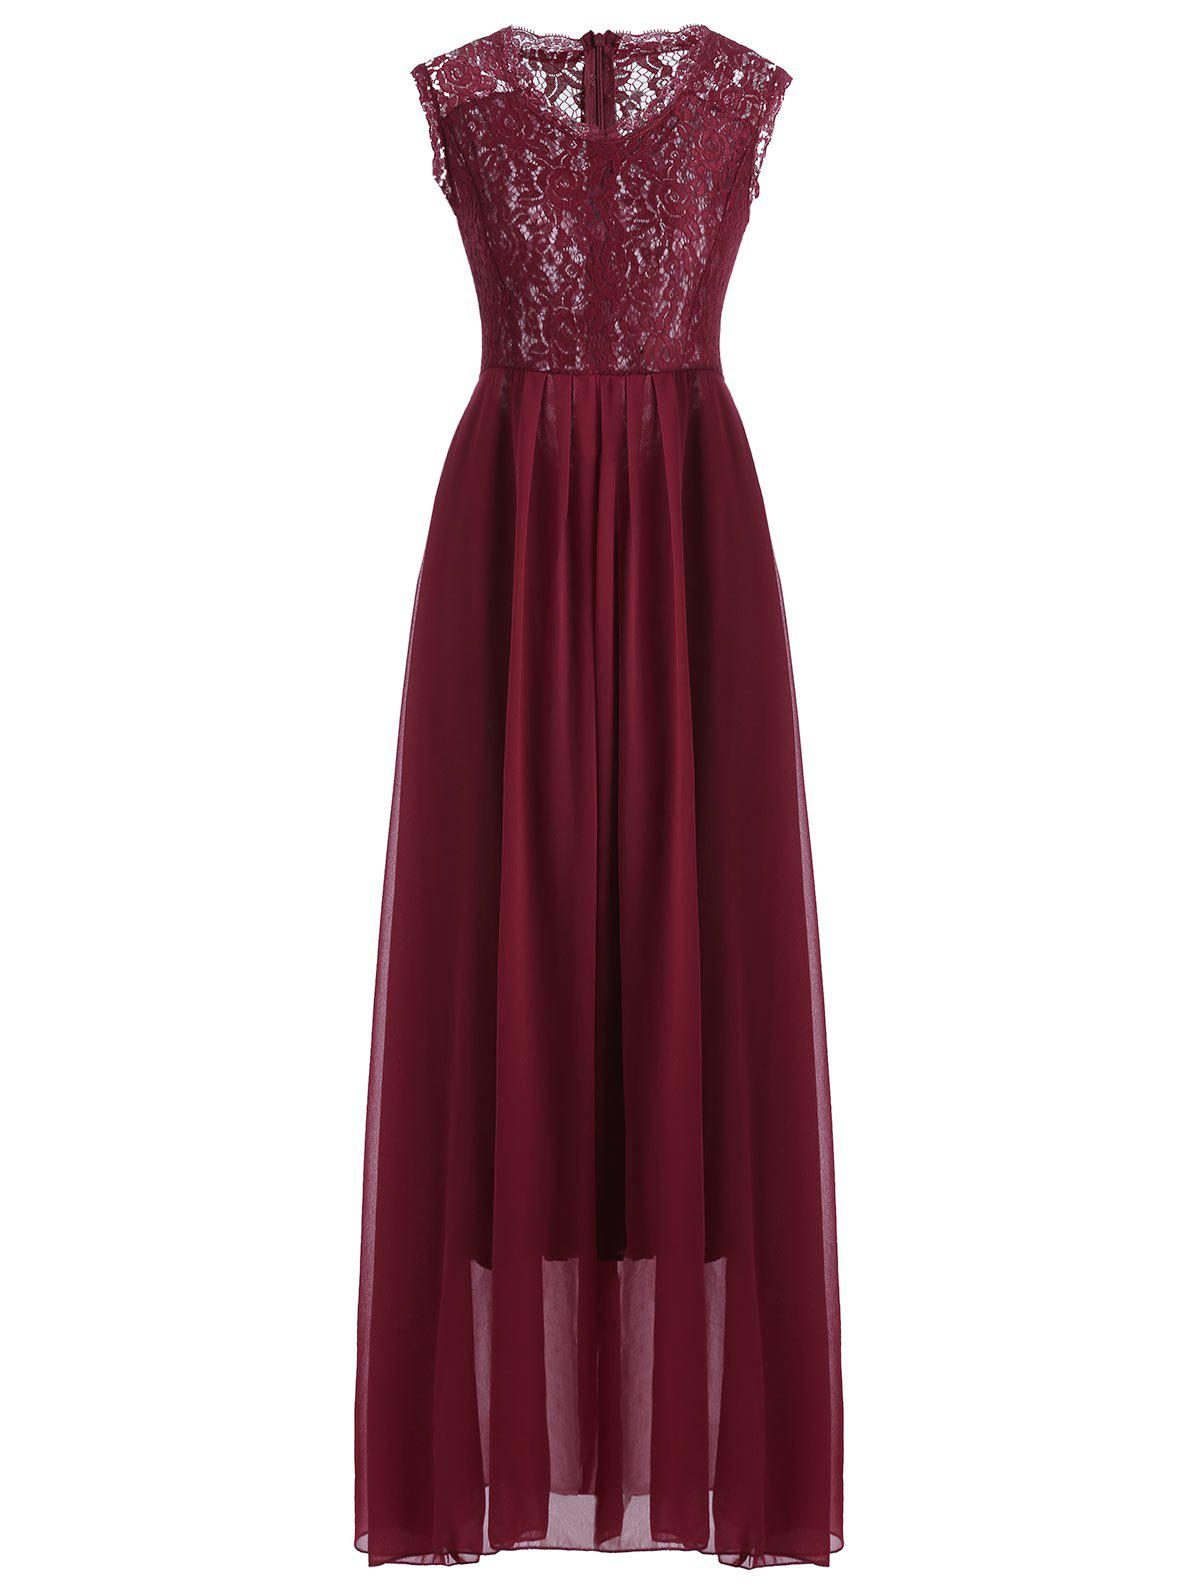 Maxi Lace Top Sleeveless Prom Formal DressWOMEN<br><br>Size: S; Color: DEEP RED; Style: Casual; Material: Lace,Polyester; Silhouette: A-Line; Dresses Length: Ankle-Length; Neckline: Scoop Neck; Sleeve Length: Sleeveless; Pattern Type: Patchwork; With Belt: No; Season: Spring,Summer; Weight: 0.3900kg; Package Contents: 1 x Dress;